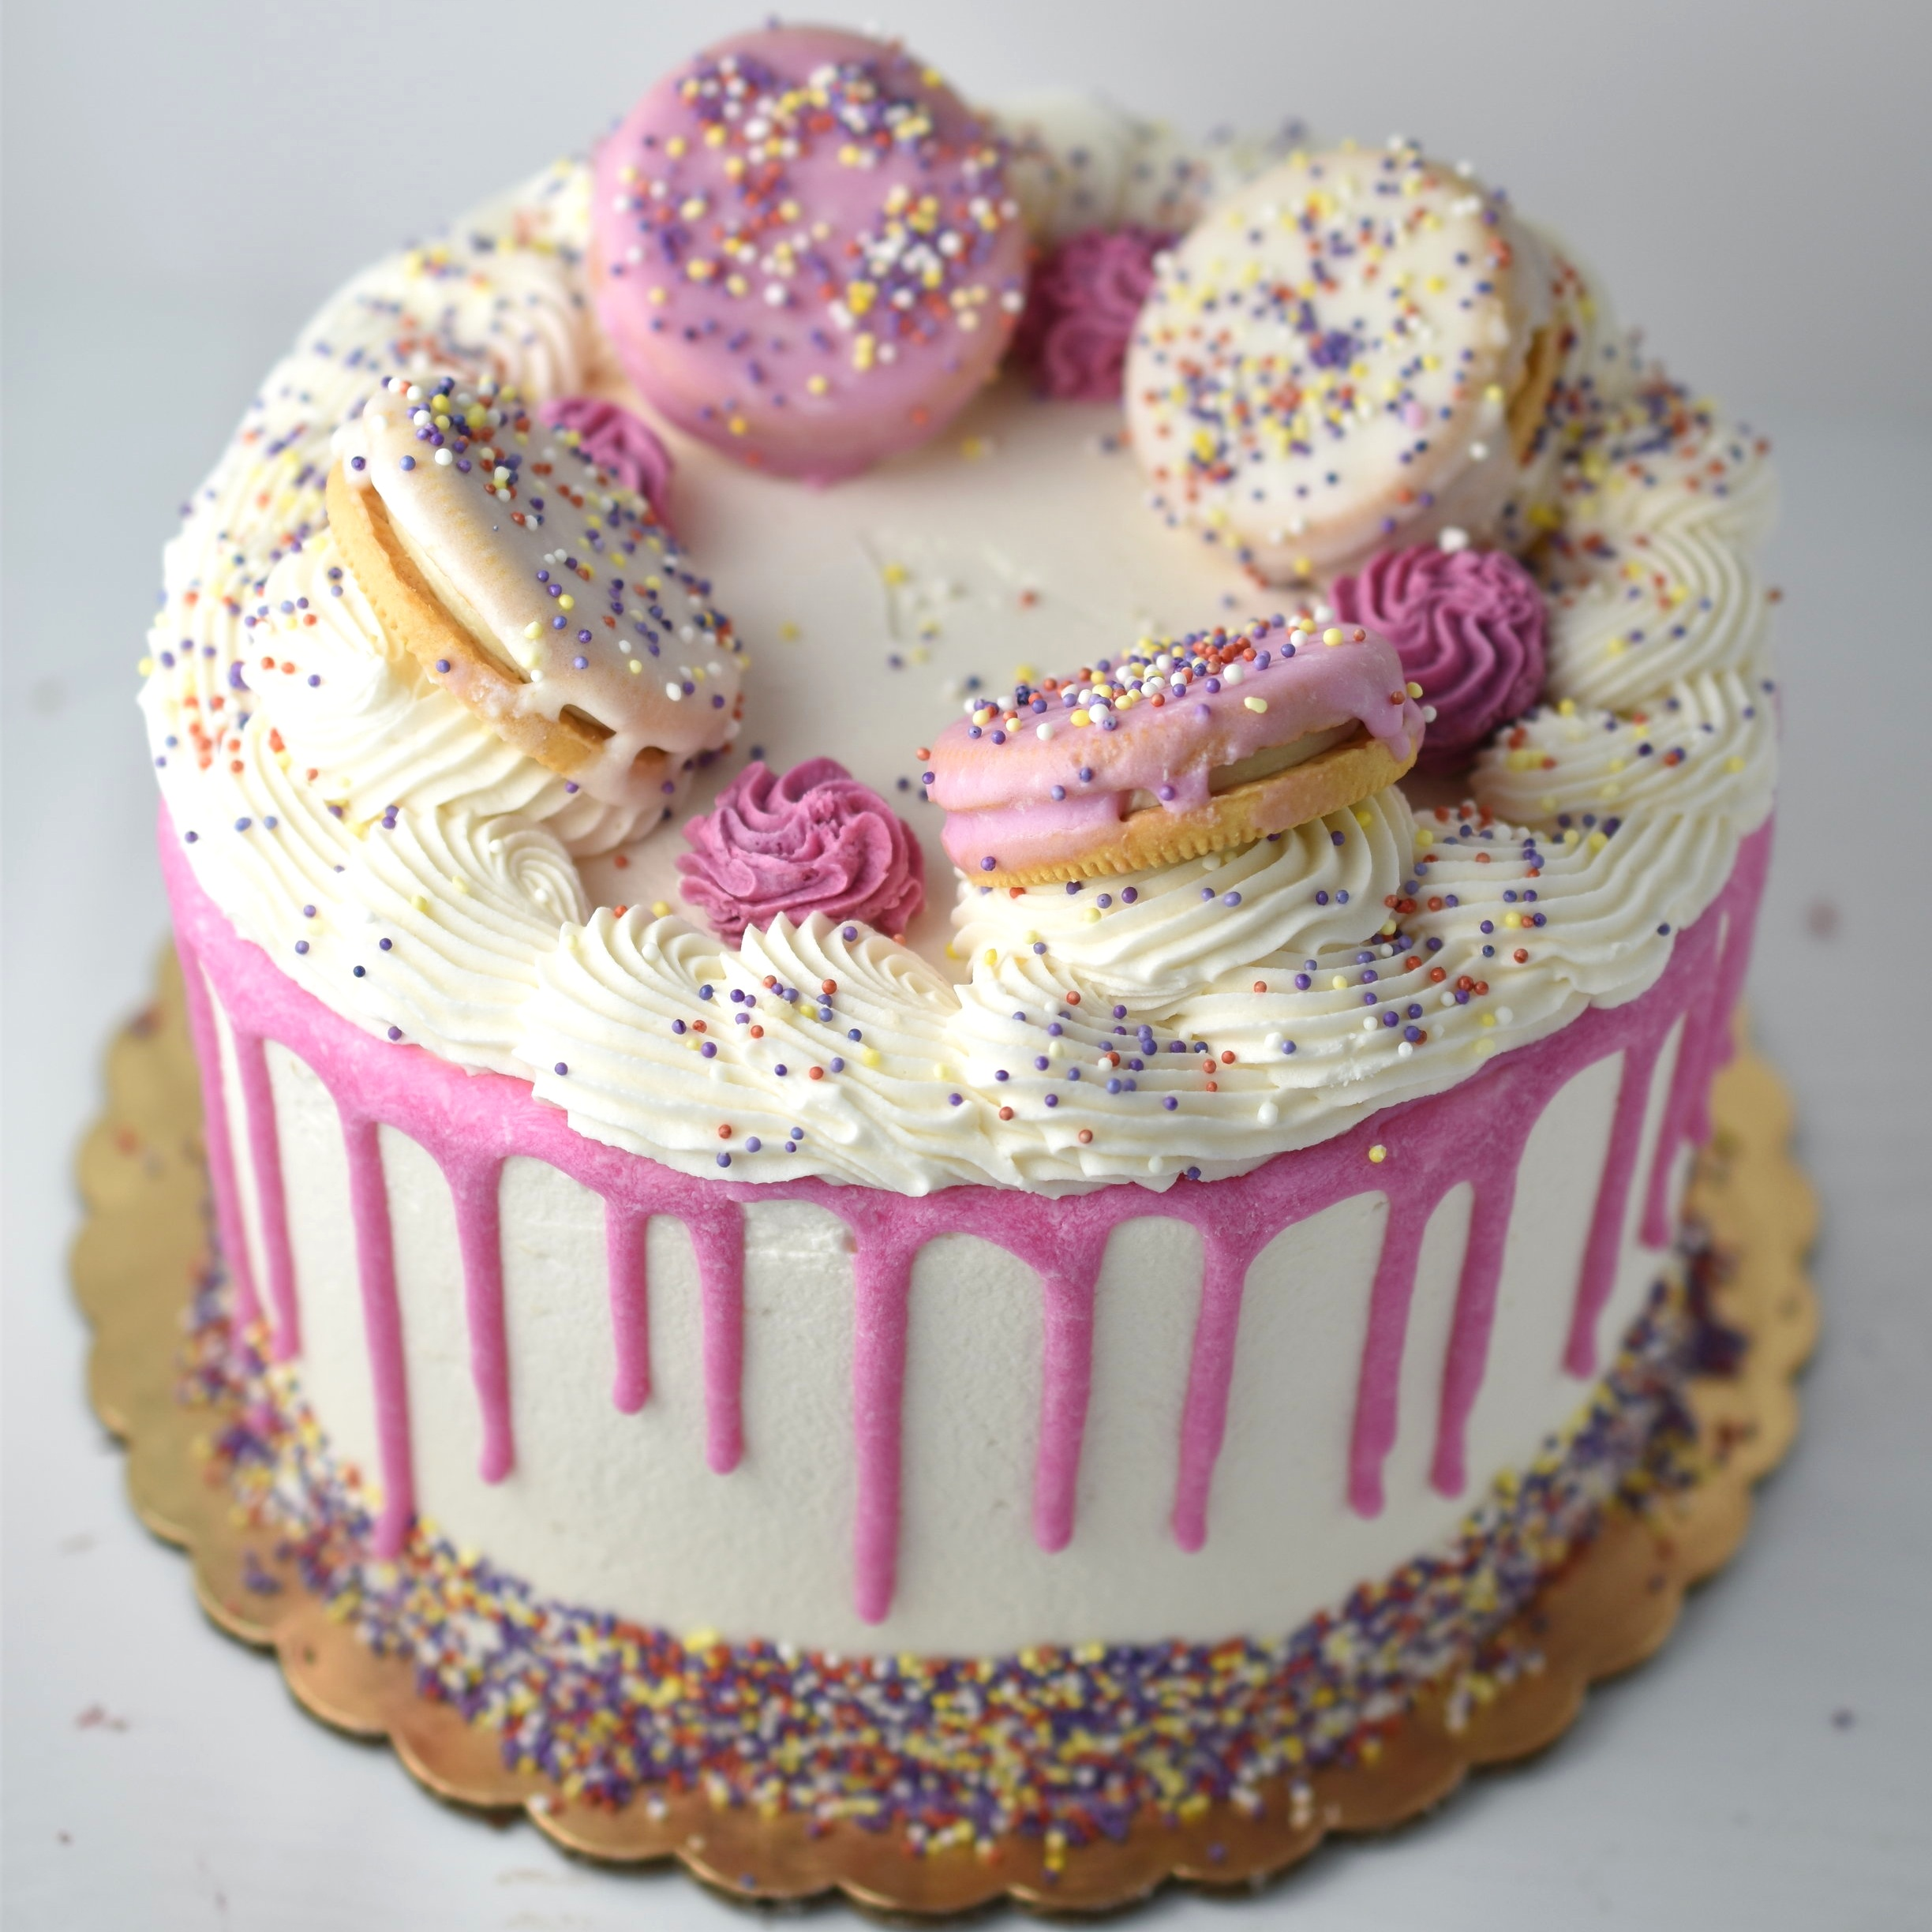 Animal cracker - Do you remember those adorable pink frosted animal crackers we loved as child? Now you can have it in cake form! Vanilla cake filled white chocolate ganache and crushed cookies. Top it off with some fluffy vanilla frosting and you've found heaven